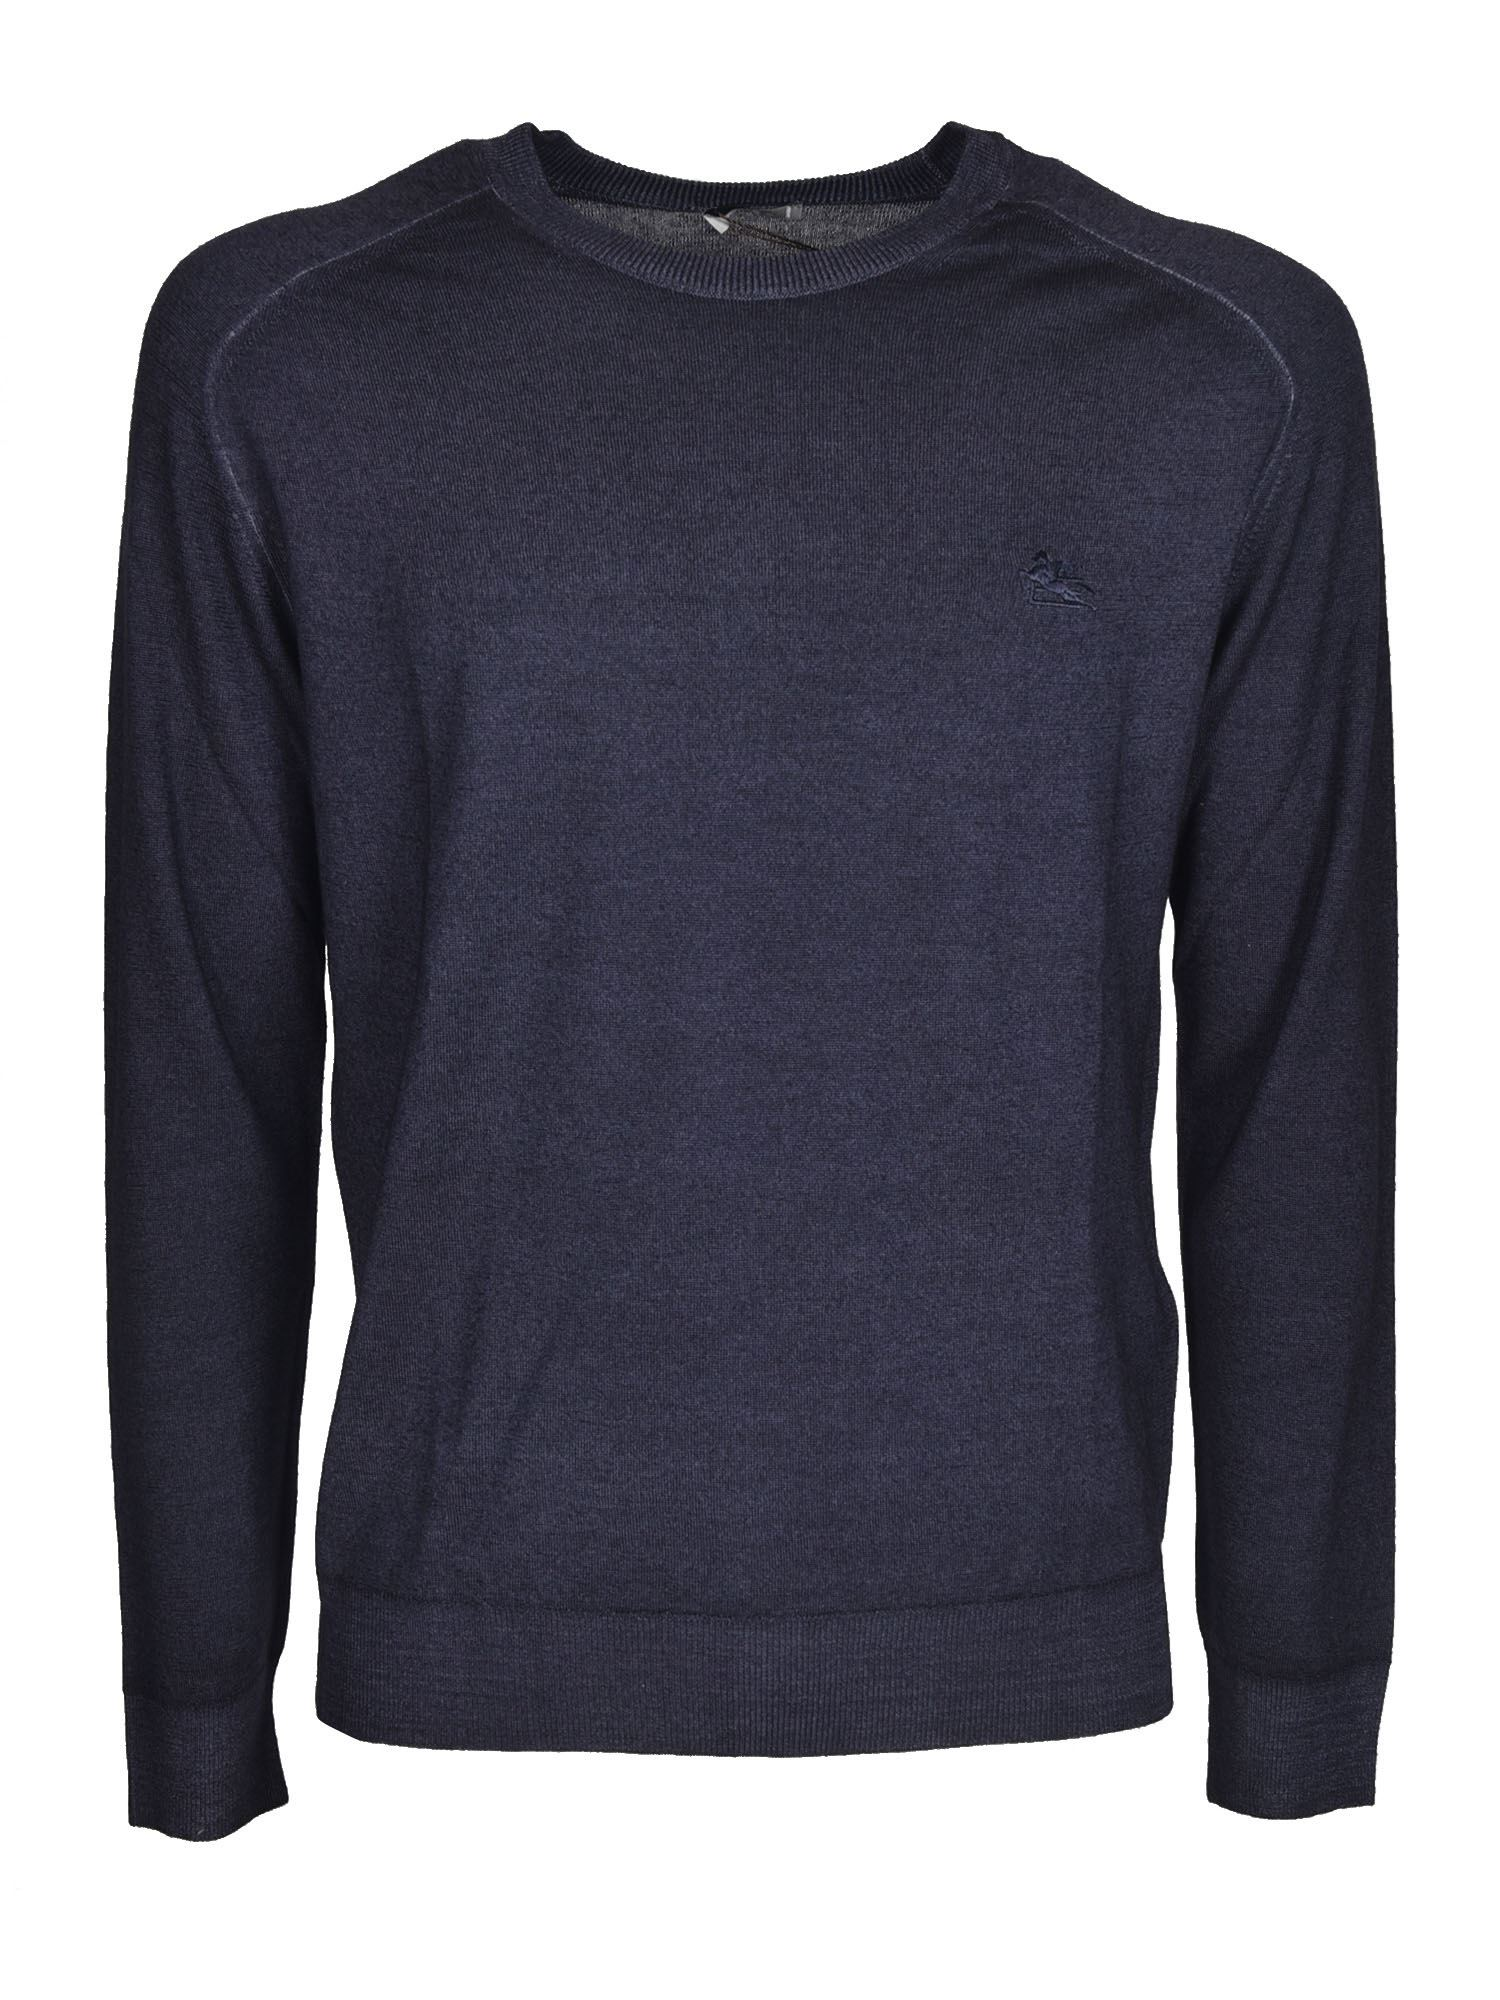 Etro LOGO SWEATER IN BLUE